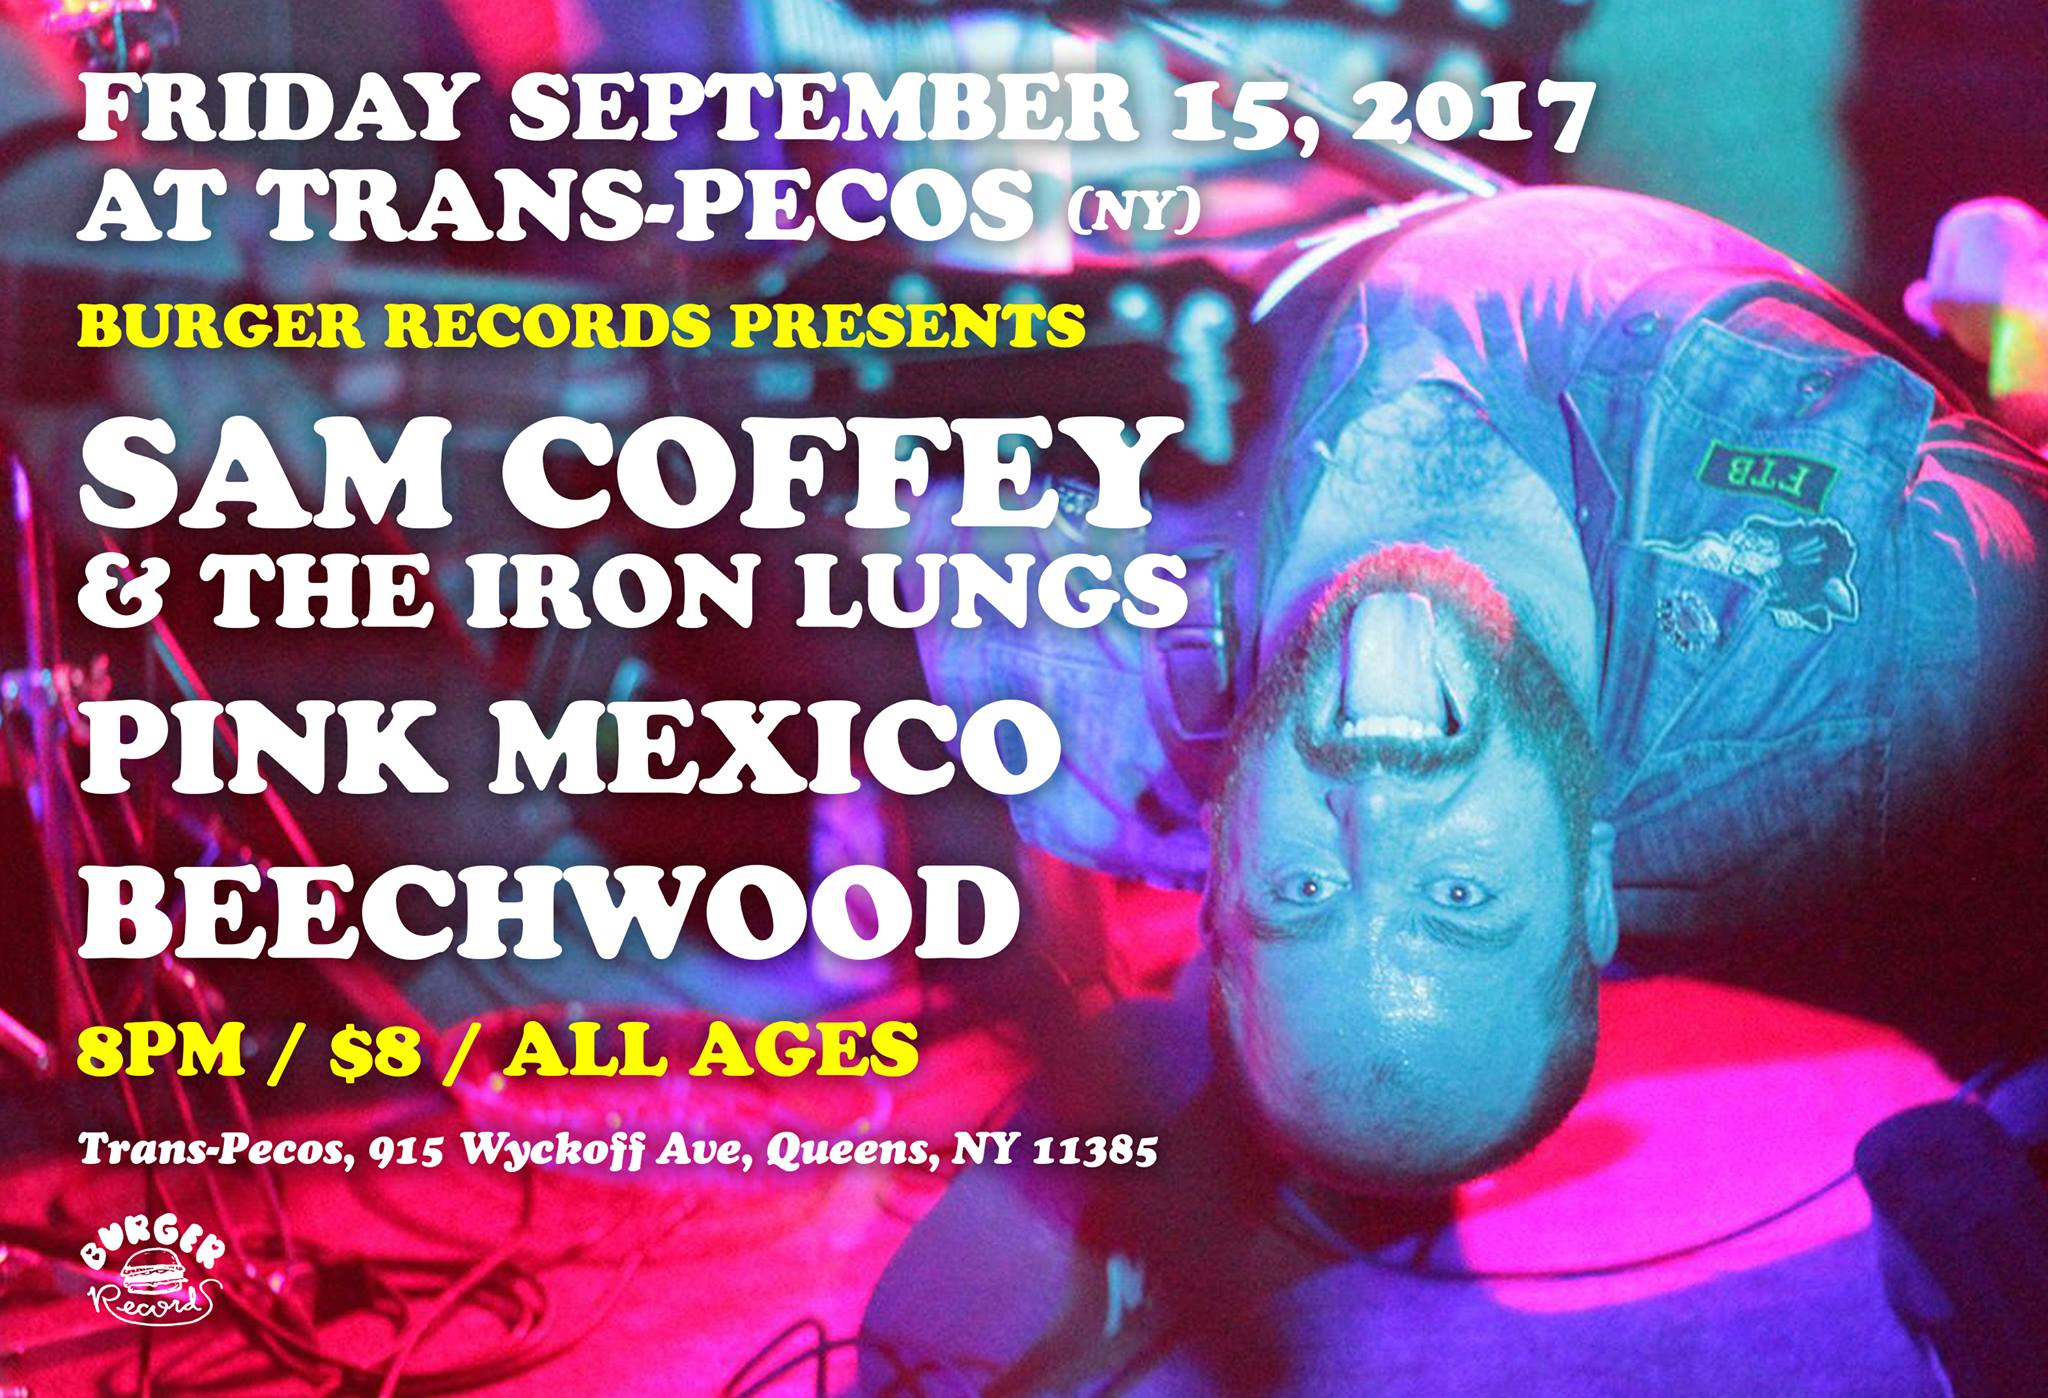 BURGER RECORDS Presents...   Sam Coffey & The Iron Lungs (Burger, Dine Alone Records)  https://samcoffeyandtheironlungs.bandcamp.com/   with  Pink Mexico & Beechwood NYC    ALL AGES $8.00 Advance $10.00 @ The Door  www.burgerrecords.com   www.thetranspecos.com